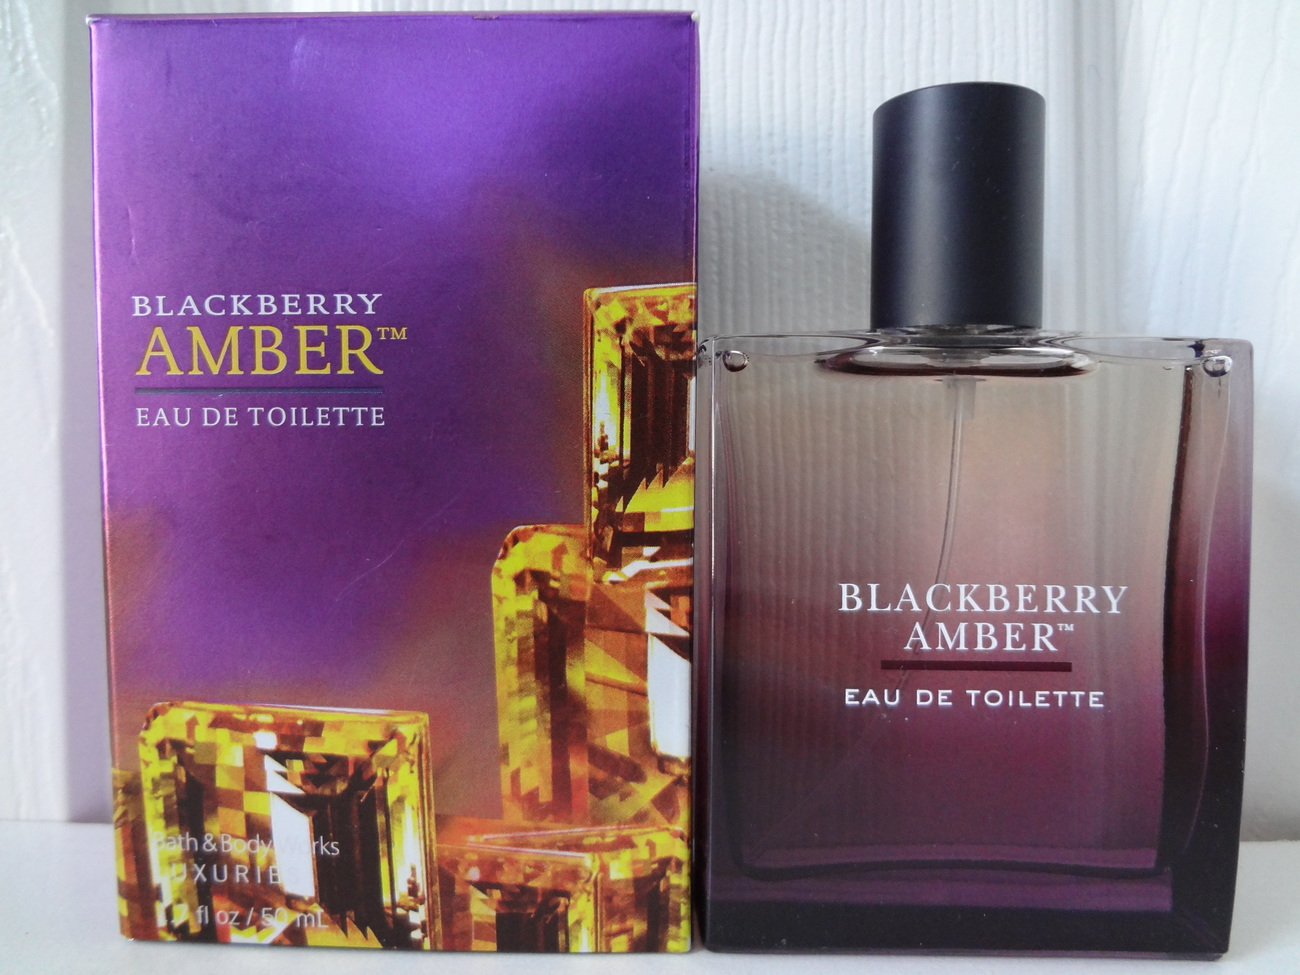 Bath & Body Works Luxuries Blackberry Amber Eau De Toilette, 1.7 fl. oz / 50 ml